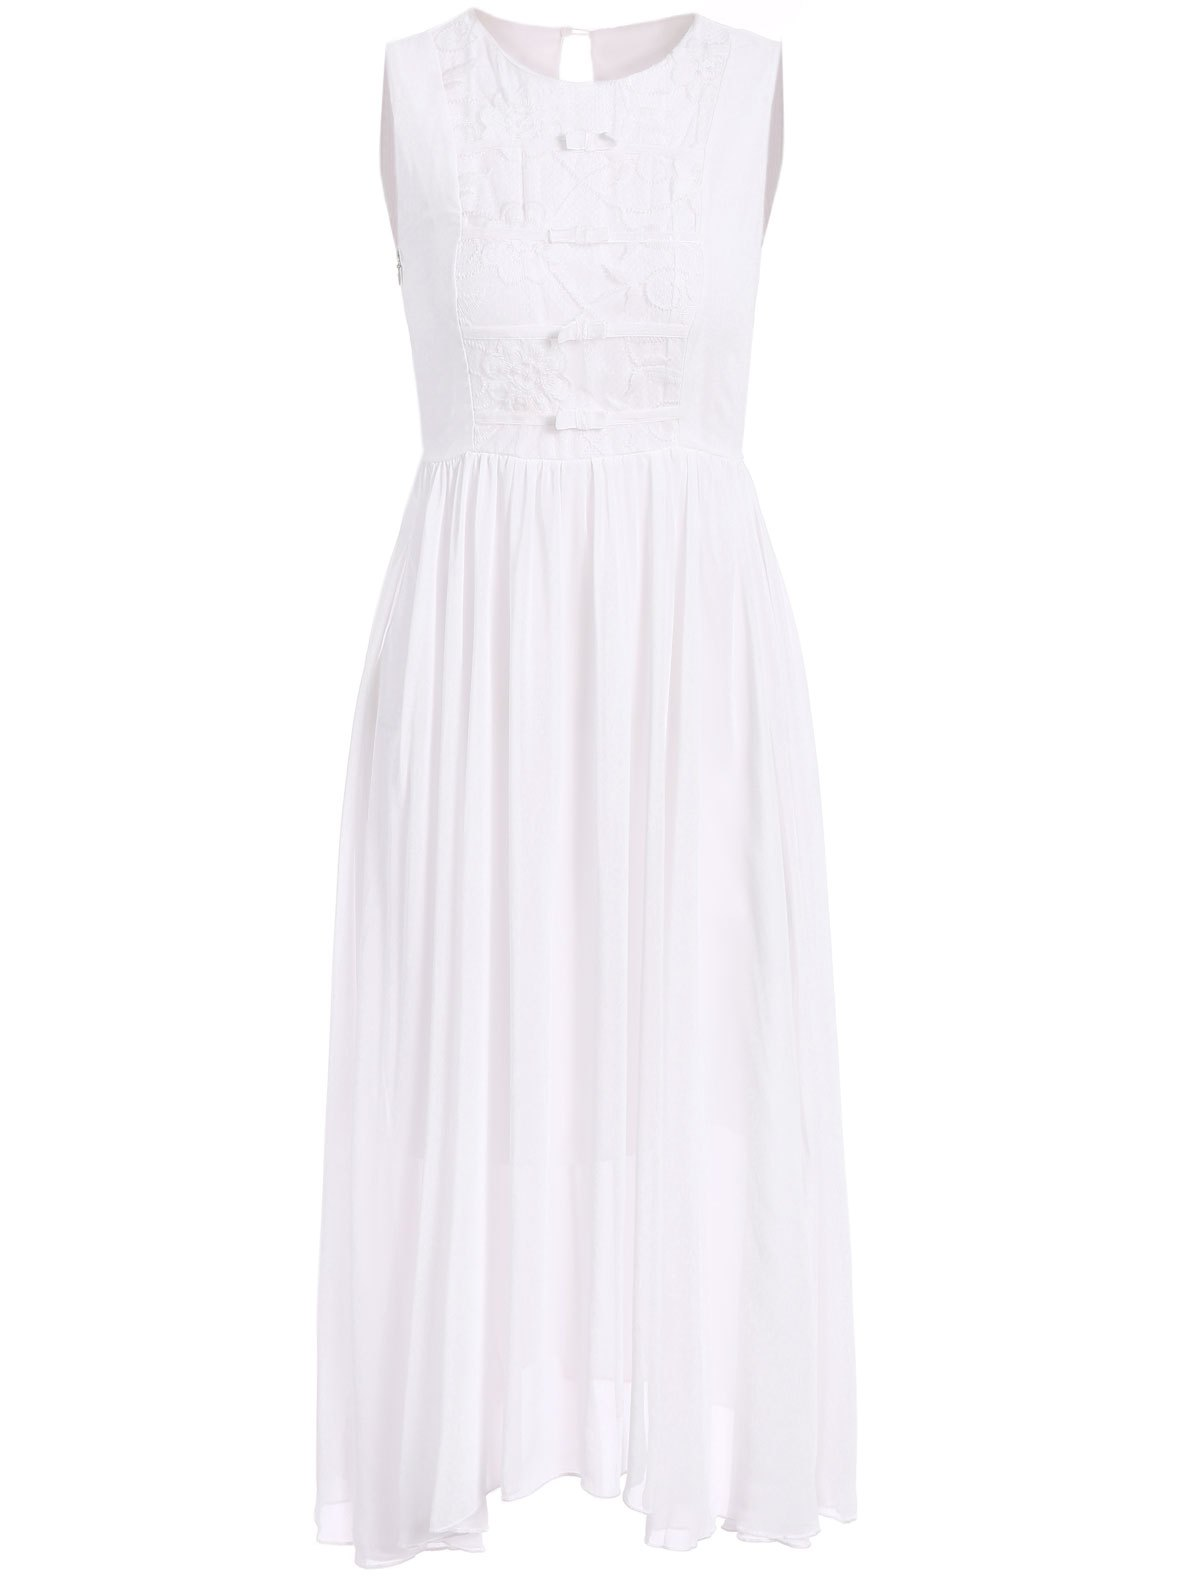 Bohemian Style Round Neck Sleeveless Bowknot Design Women's Dress - WHITE S